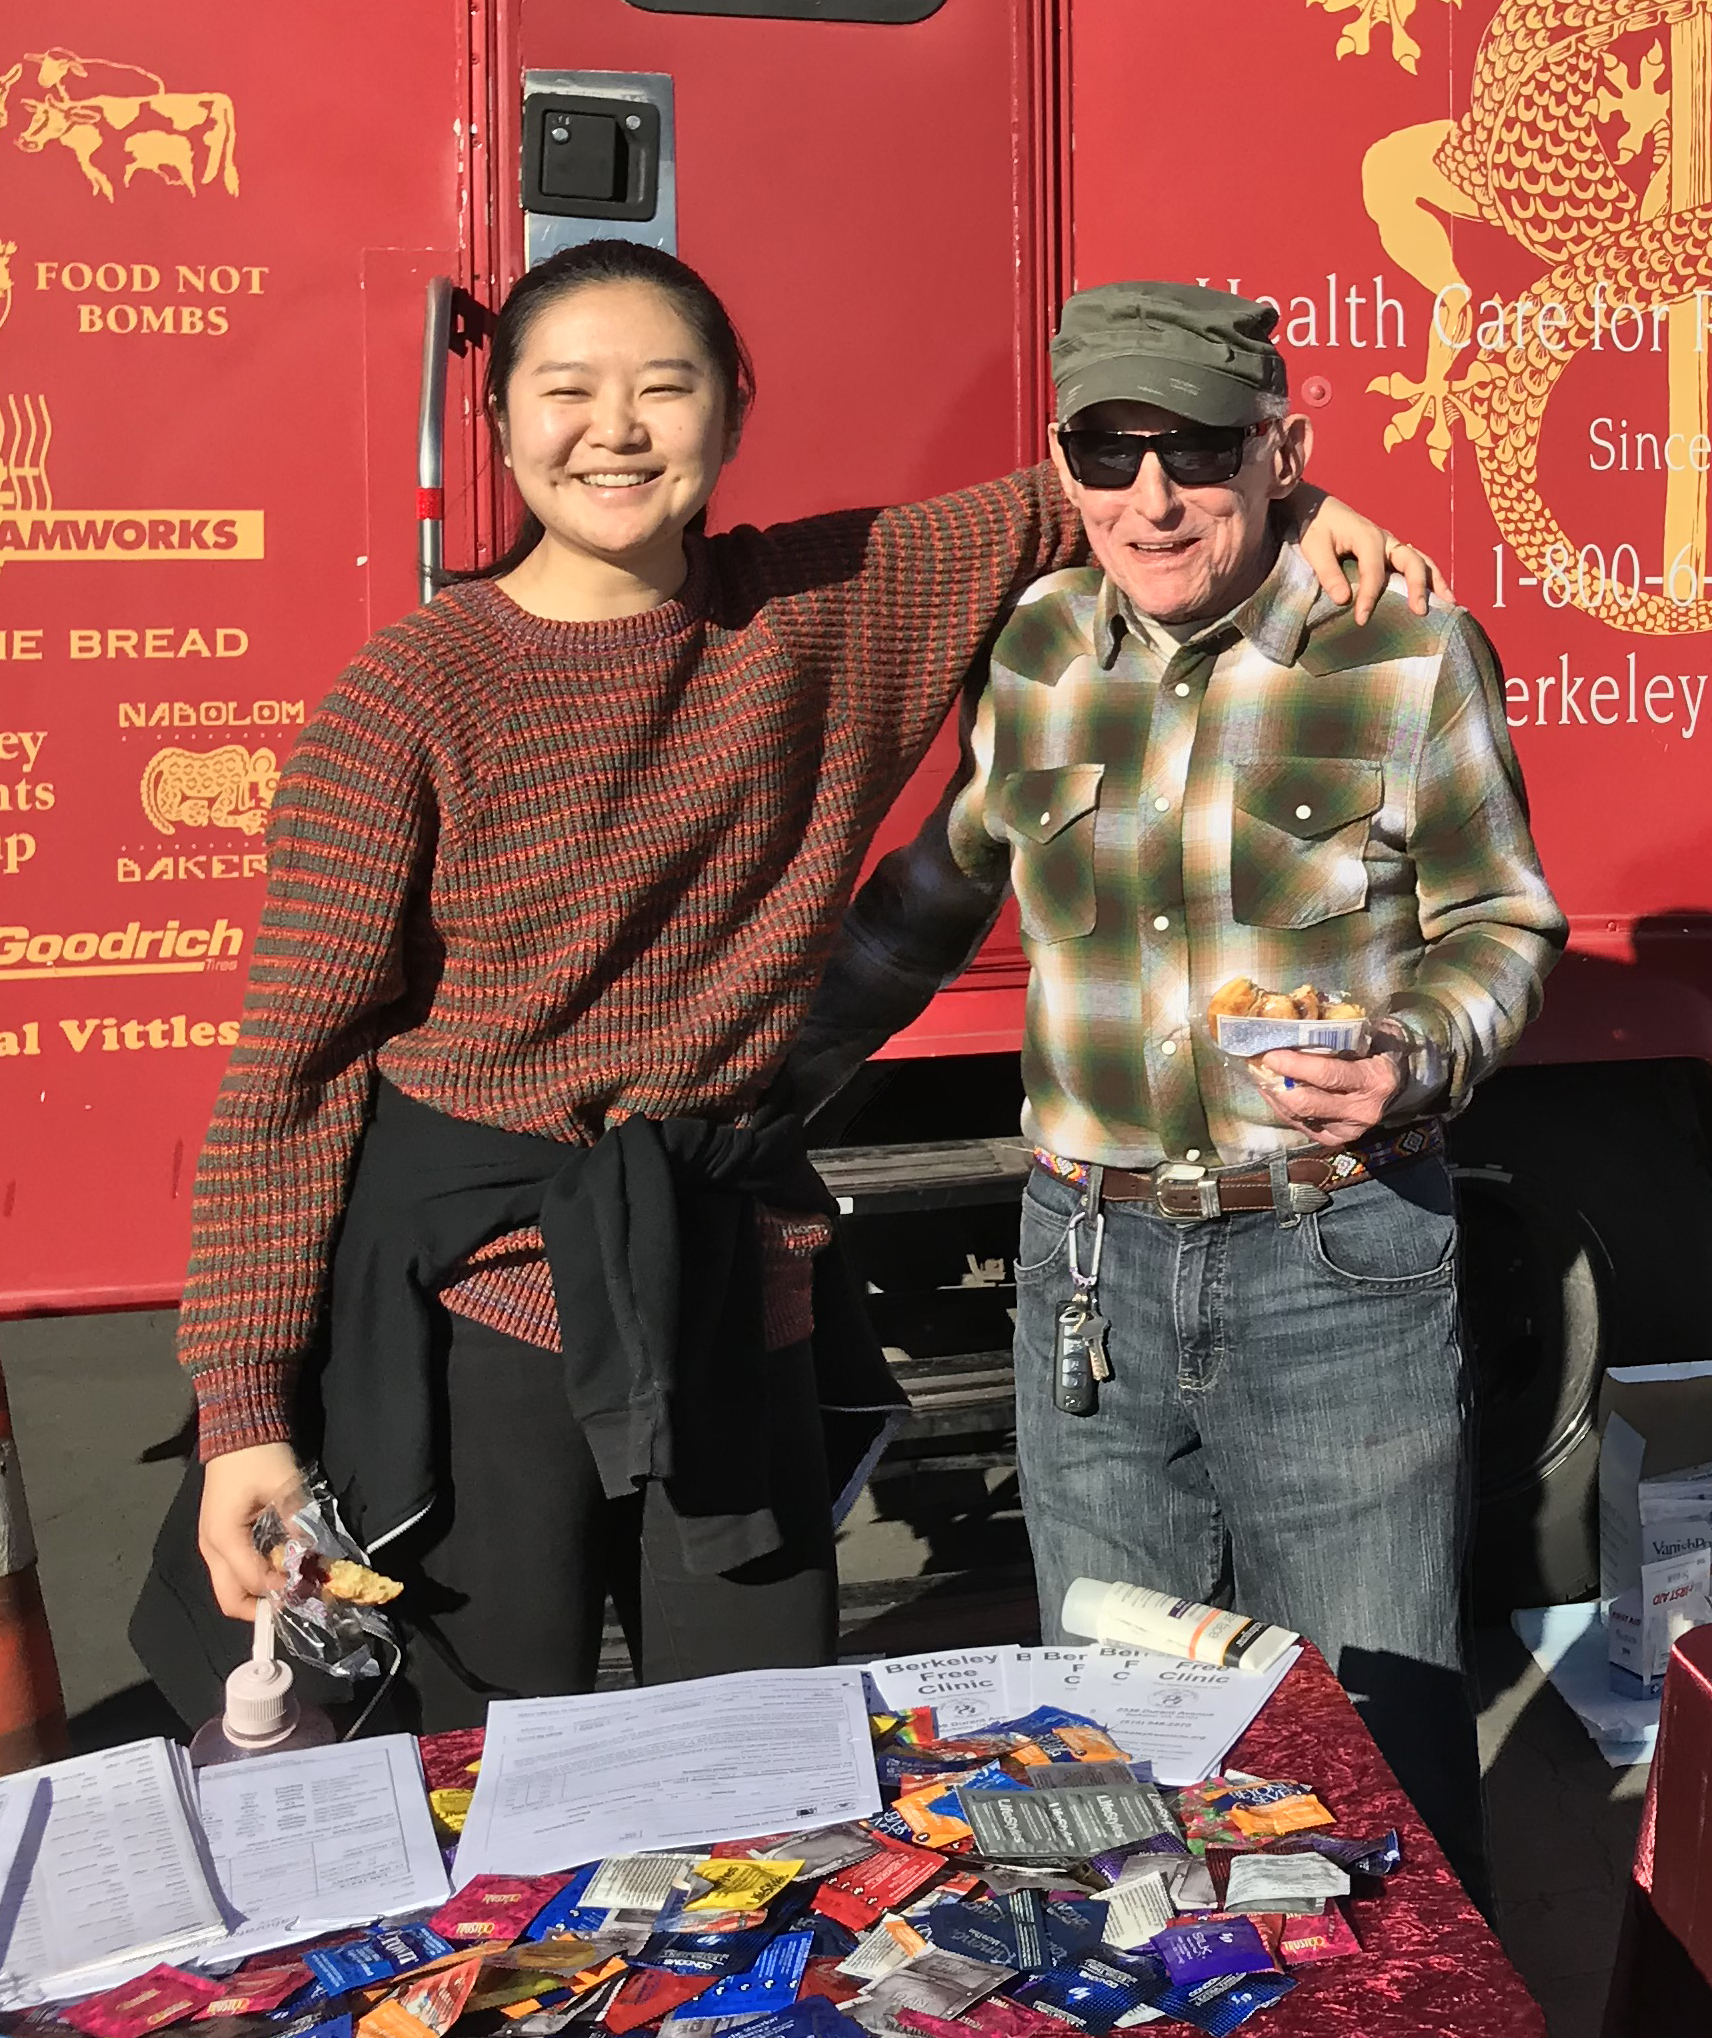 Jasmine Xi (Heptev coord and Clinic steering committee member) and Dr. Kent Sack (GMHC physician and BFC Board chair) conduct outreach at an oakland homeless services event